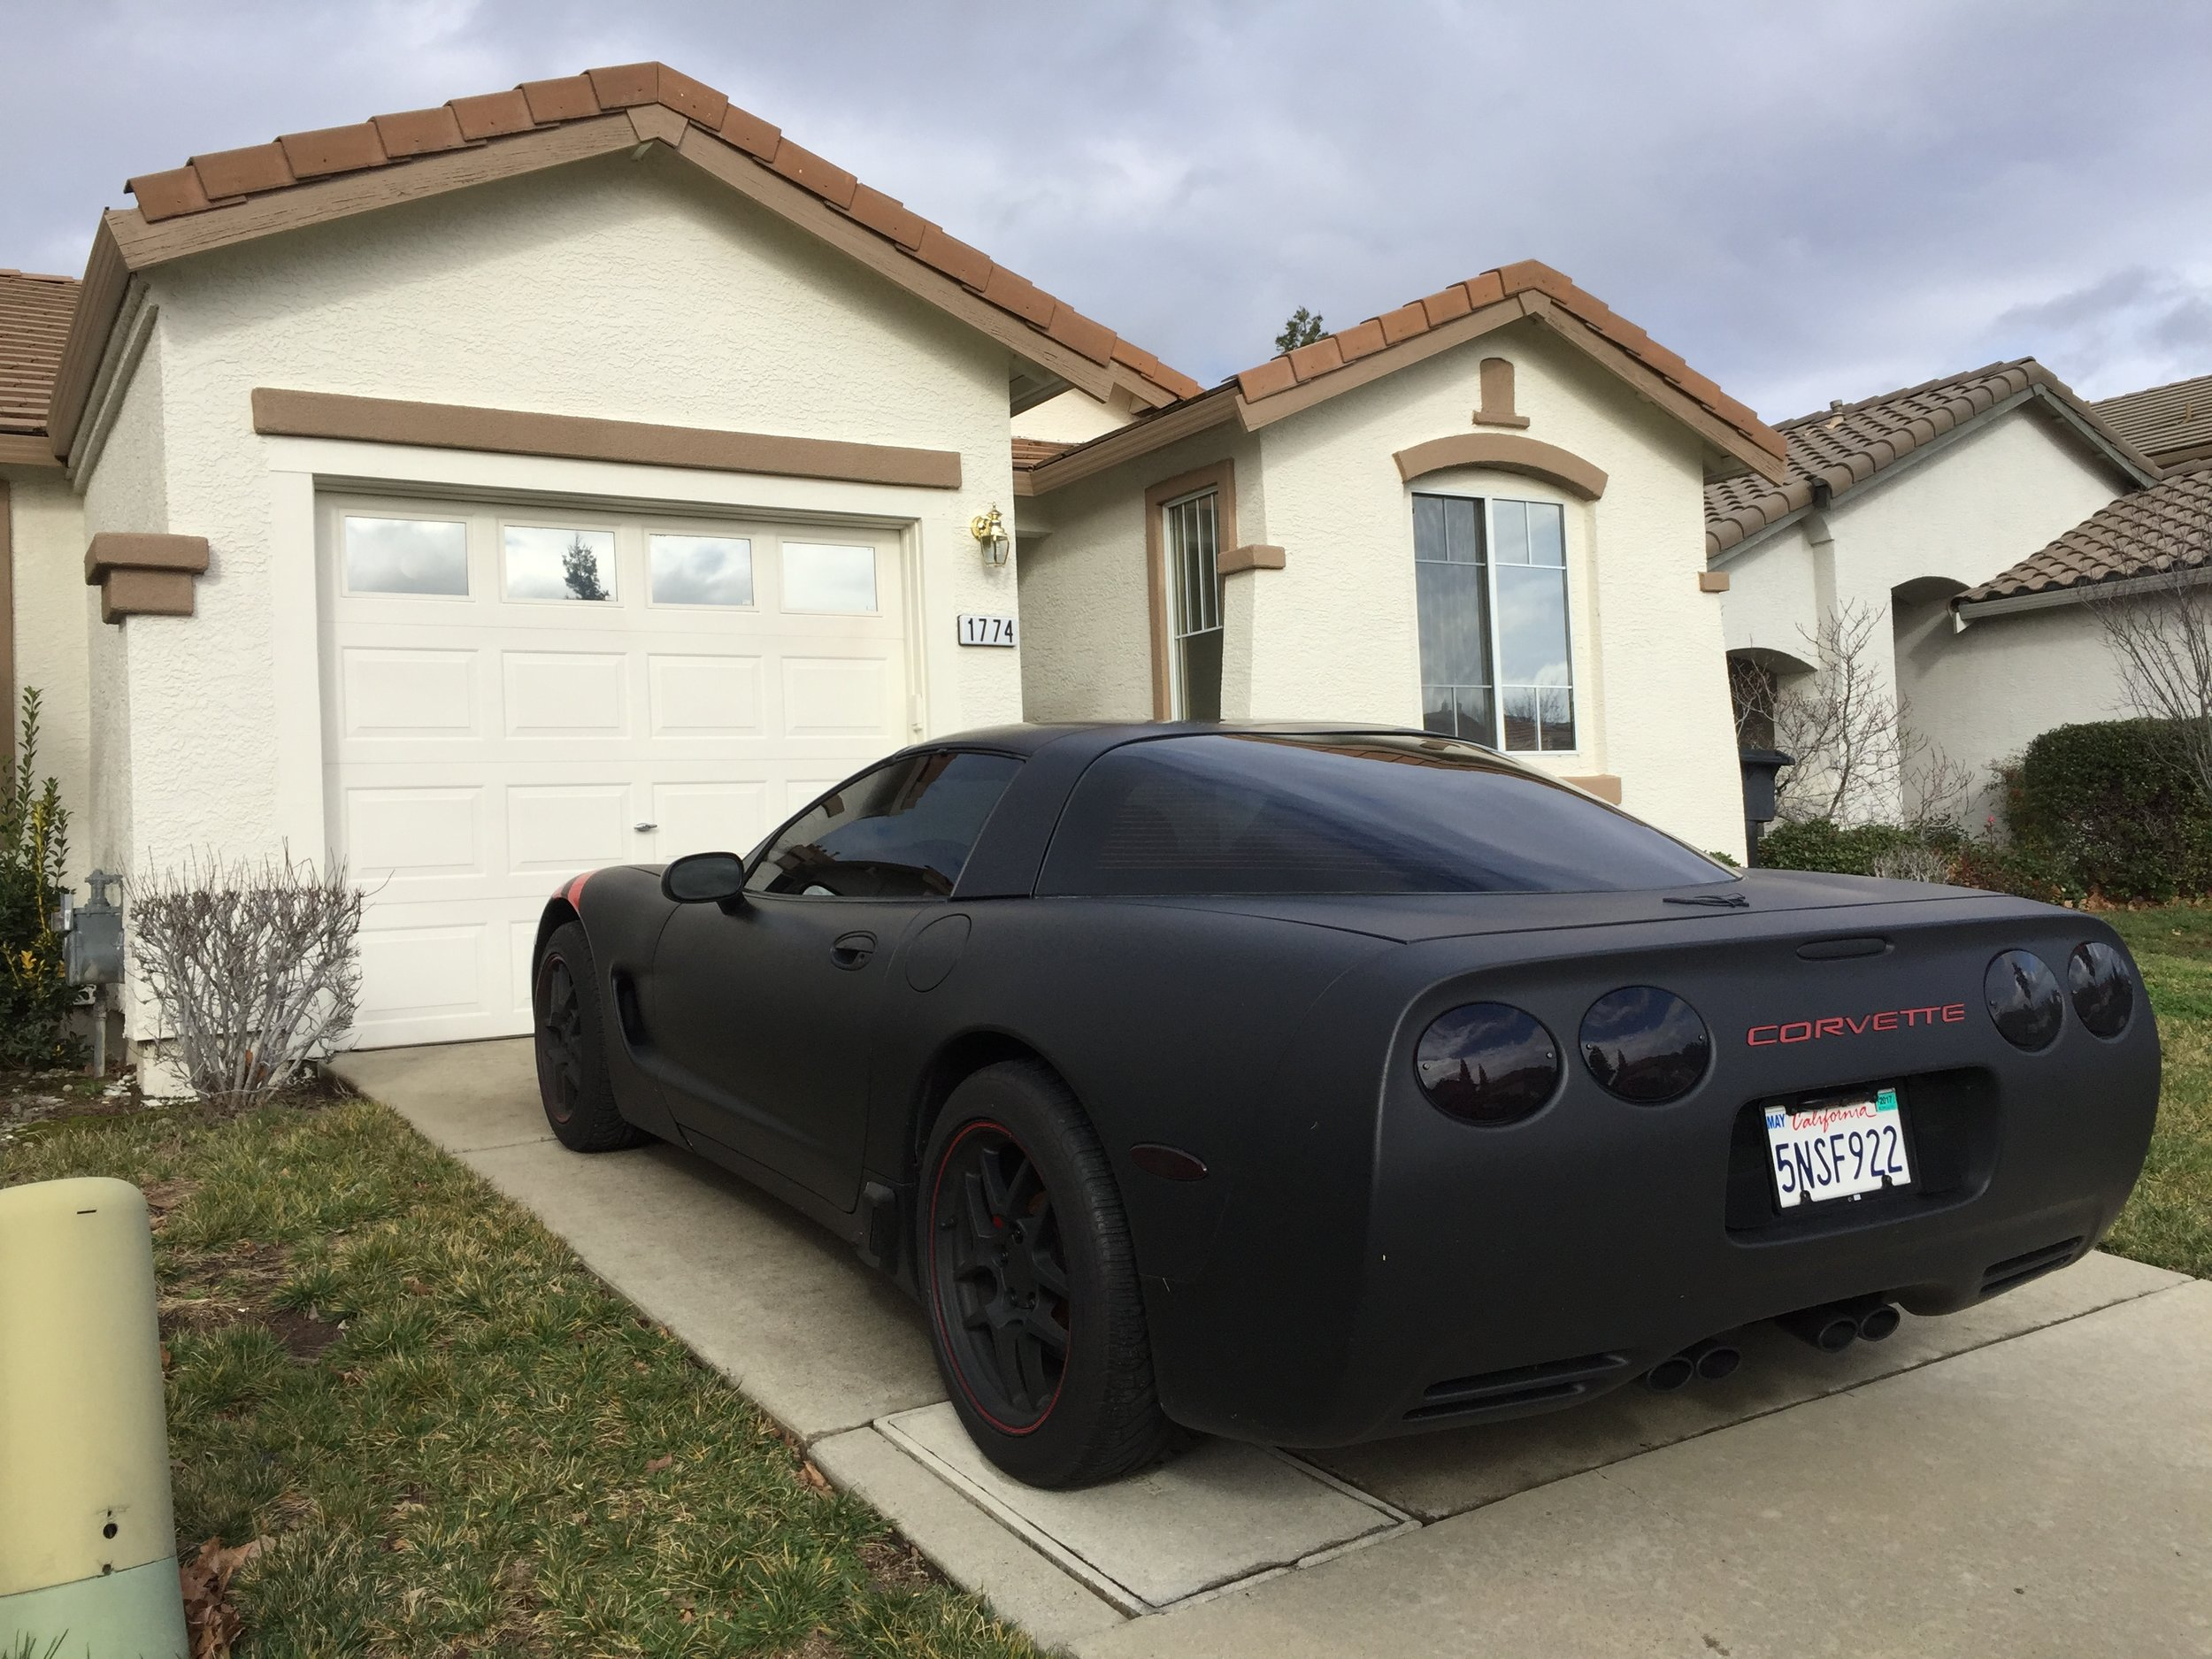 Residential & Automotive tinting